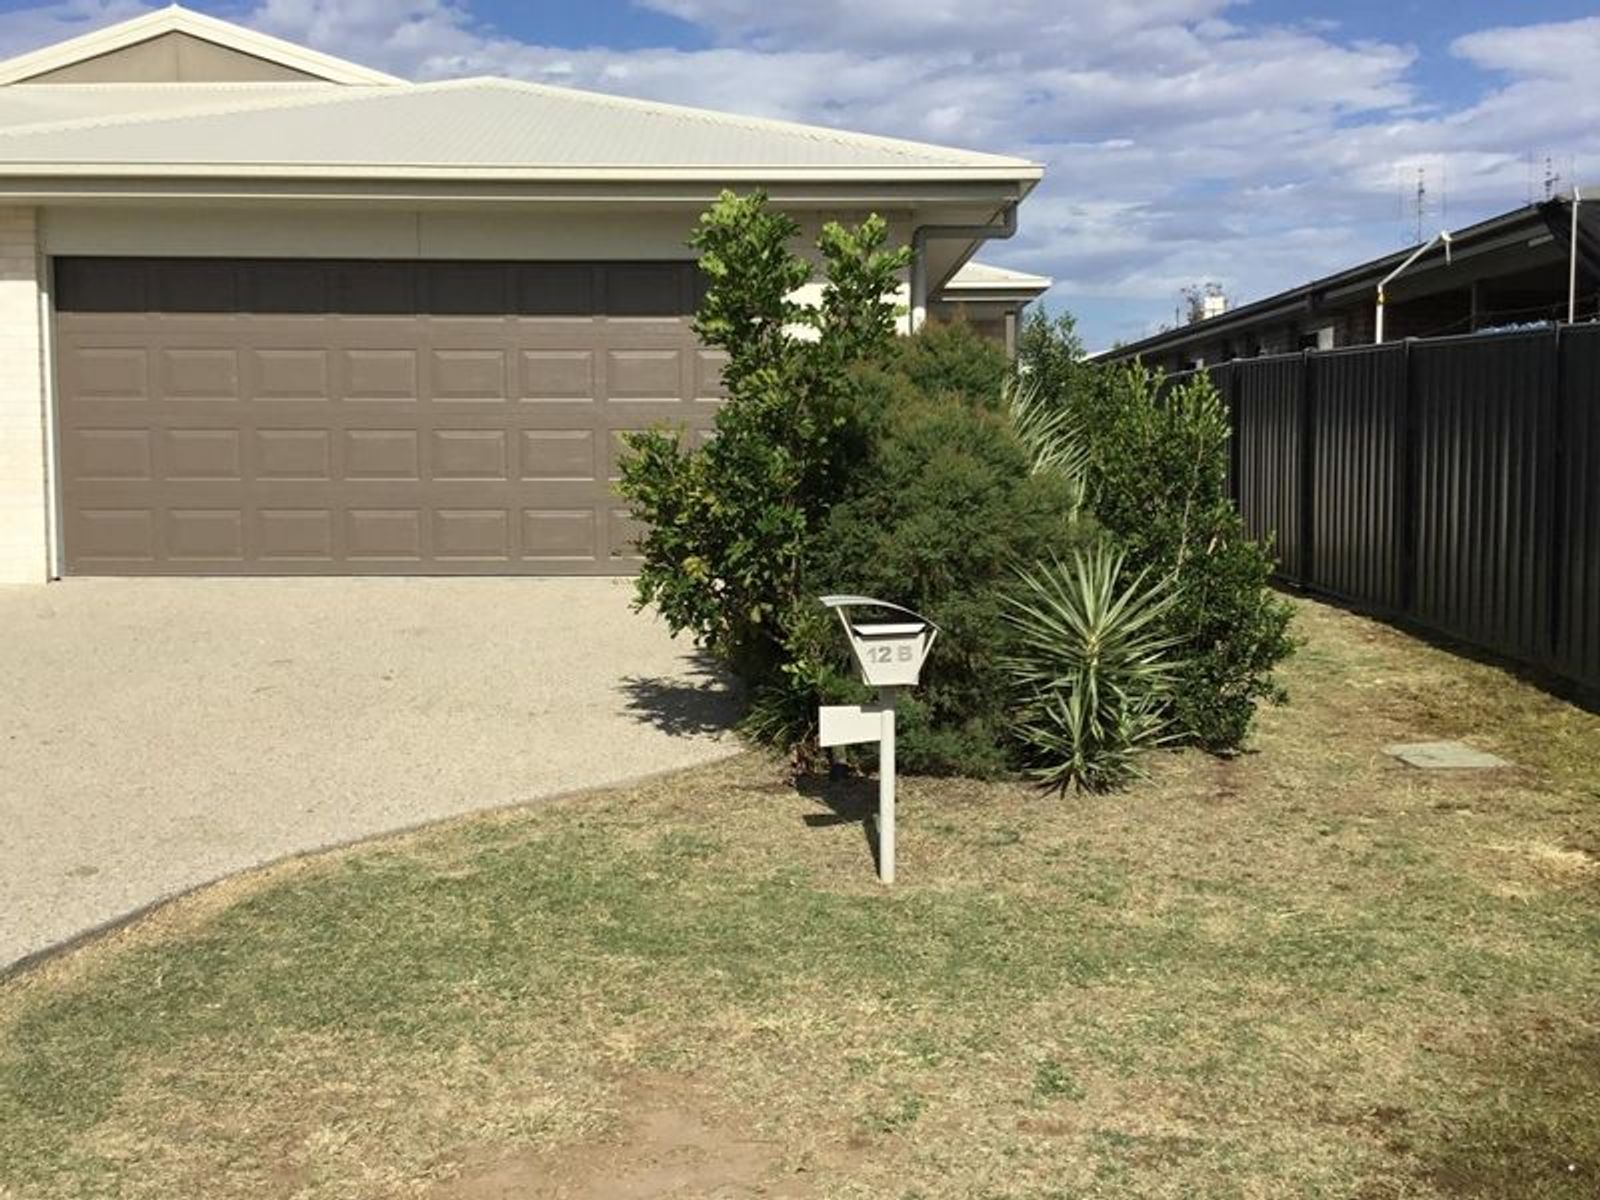 2/12 Hurse Street, Chinchilla, QLD 4413